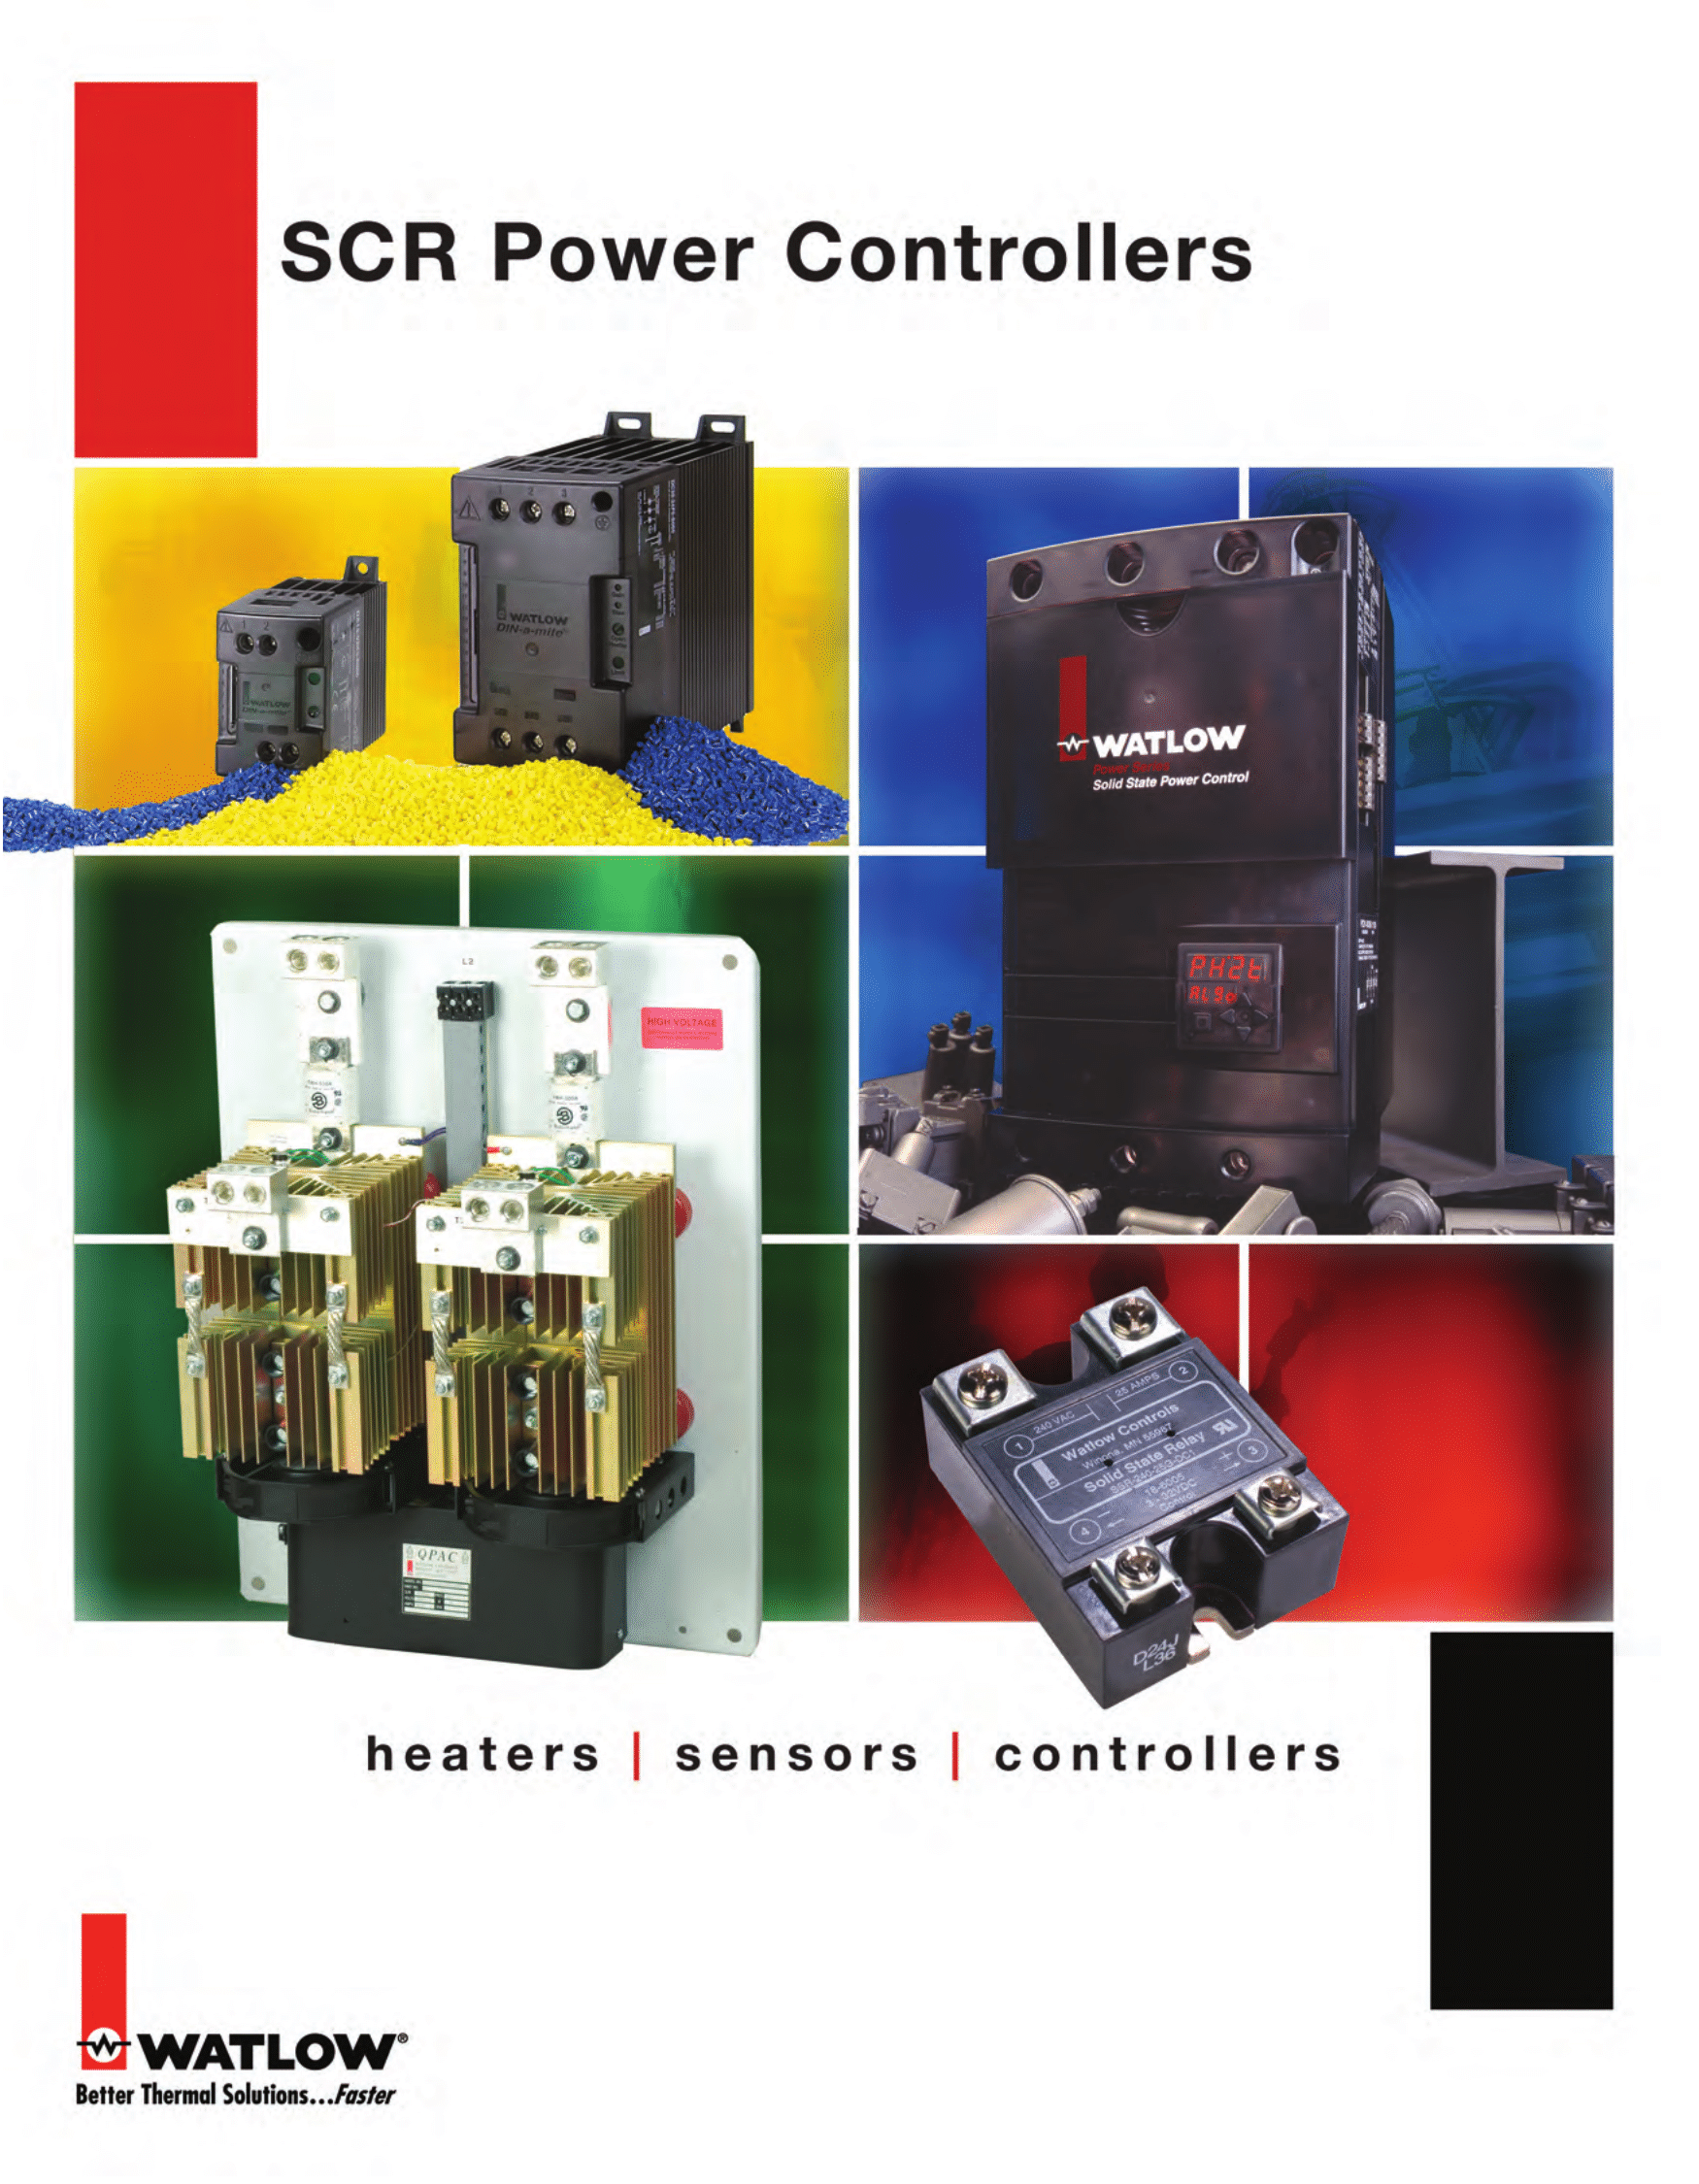 SCR-Power-Controllers-1